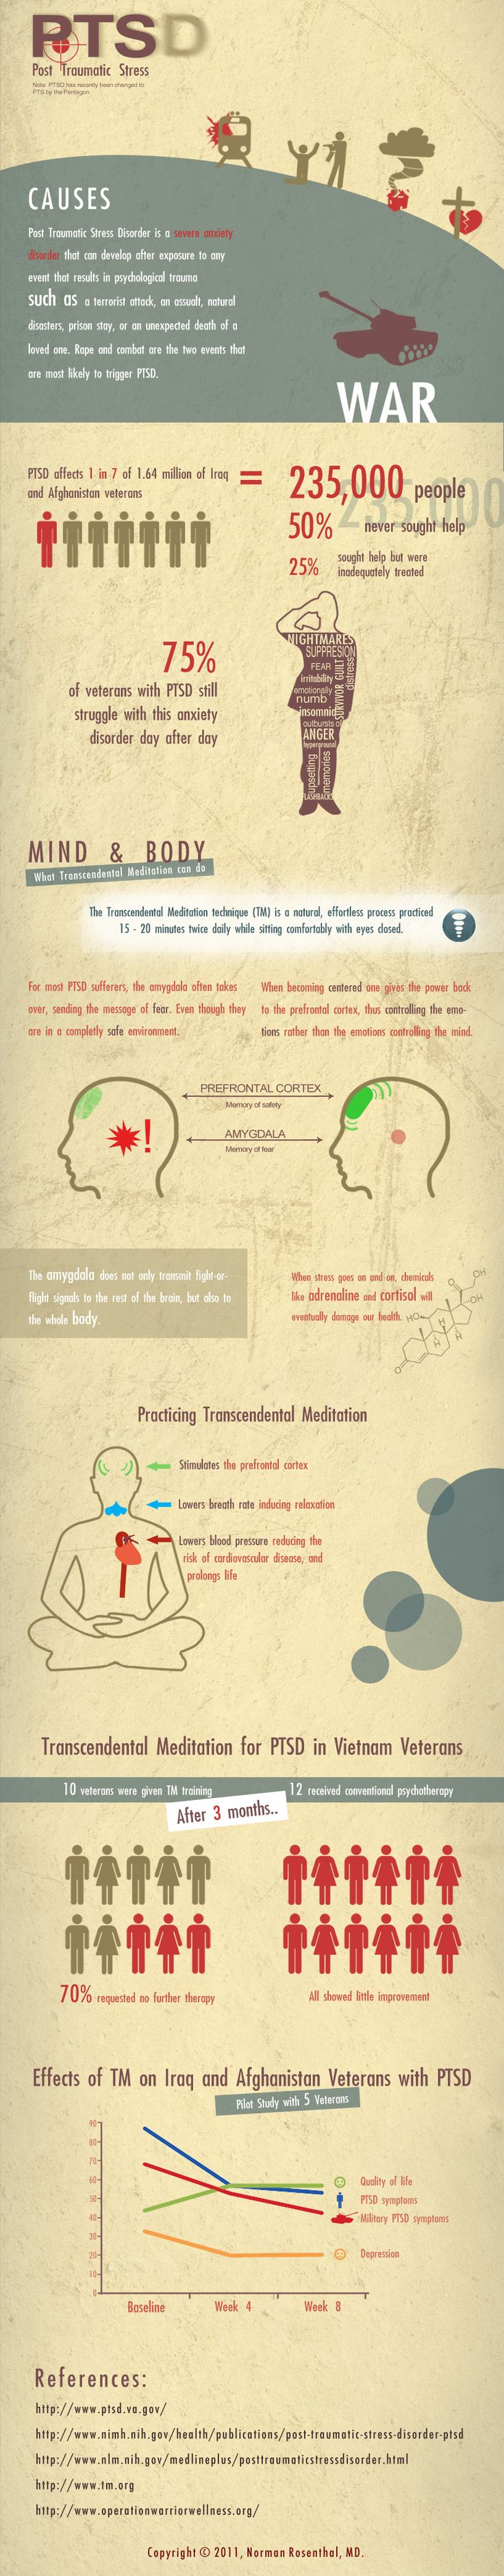 Post-Traumatic-Stress-&-Transcendental-Meditation: Transcendent Meditation, Stress Syndrome, Memories Day Mental Health, Infographics Ptsd, Posts Traumatic Stress, Healing Trauma, Psychologysoci Work, Healthcare Infographics, Blog Ptsd